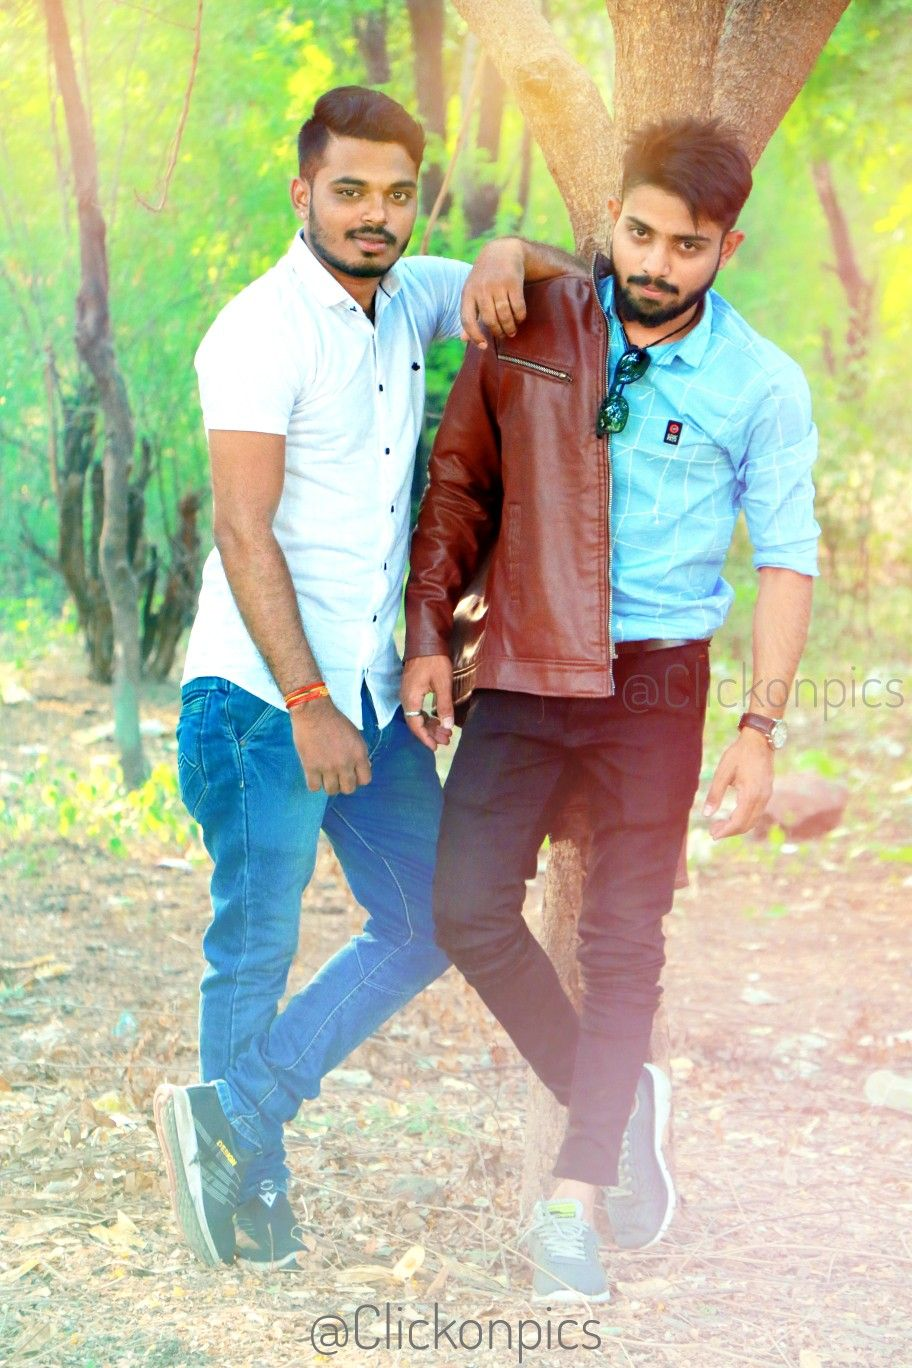 Stylish Photography @click_on_pics  #clickonpics_photography #jaydipvekariyas_photography #styleicon #style #stylist #canonmarkiv #candid📷 #indiapictures #modelingagency #mode #modelo #boy #boys #friends #ahmedabad #gujarat #copic